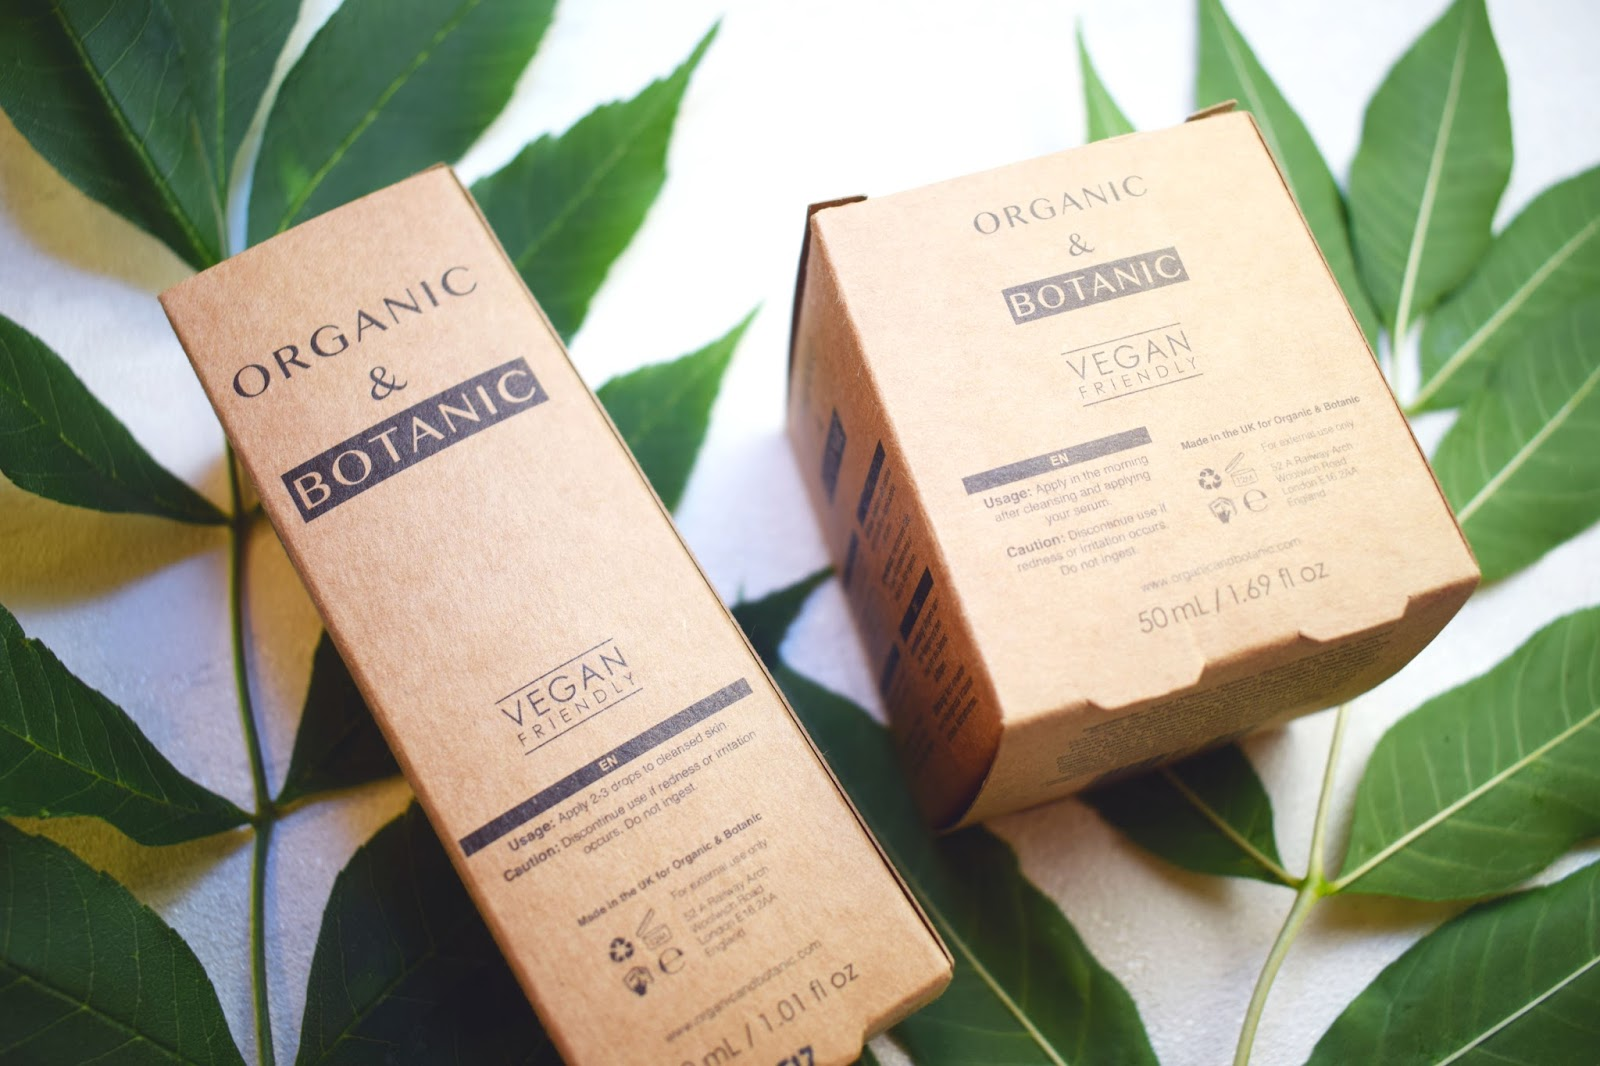 lebellelavie - Enhancing my skin with Organic & Botanic skincare